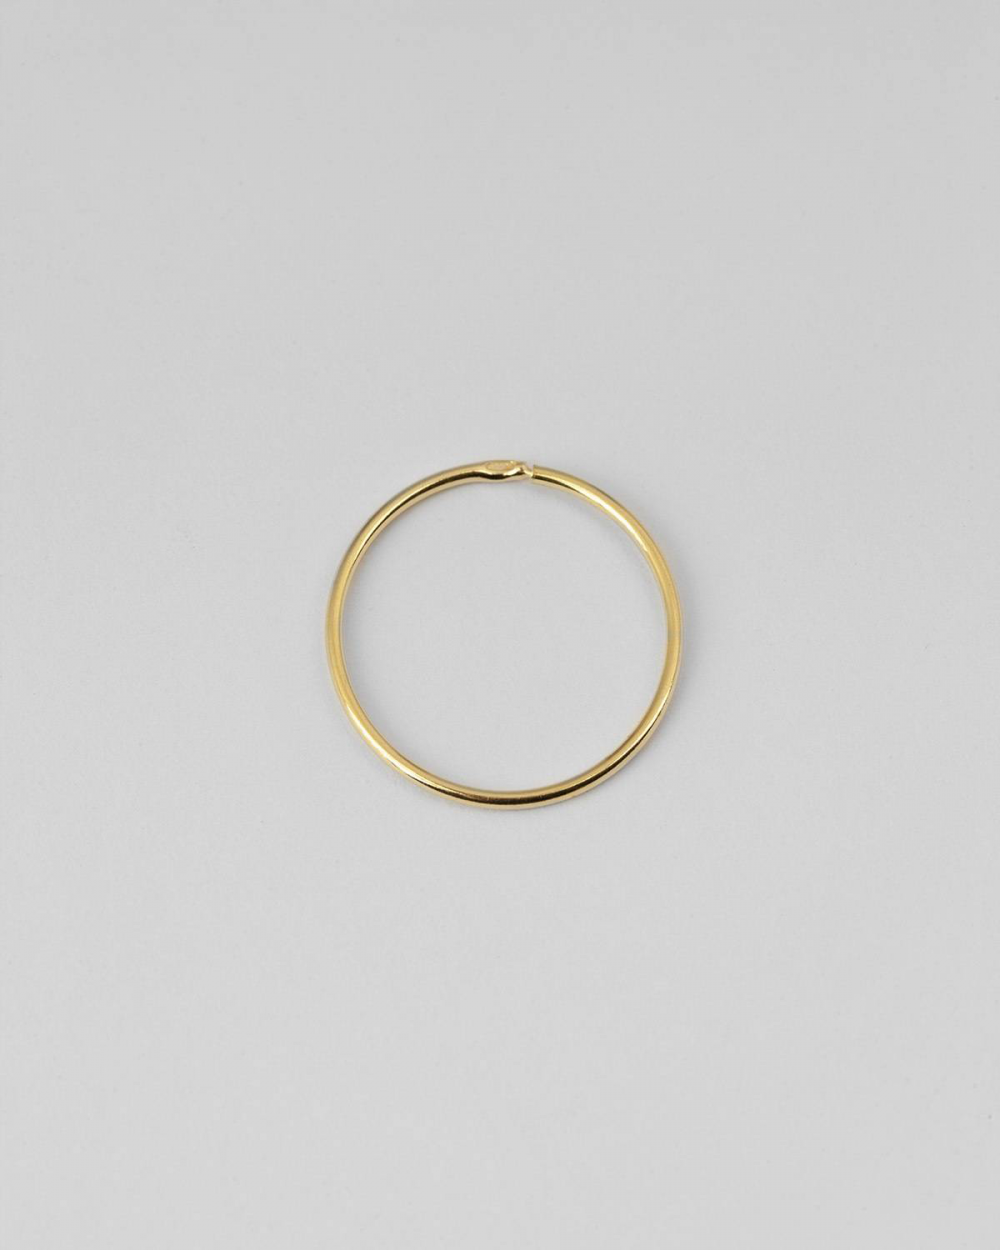 YELLOW GOLD MINI SINGLE HOOP EARRING 012 D20